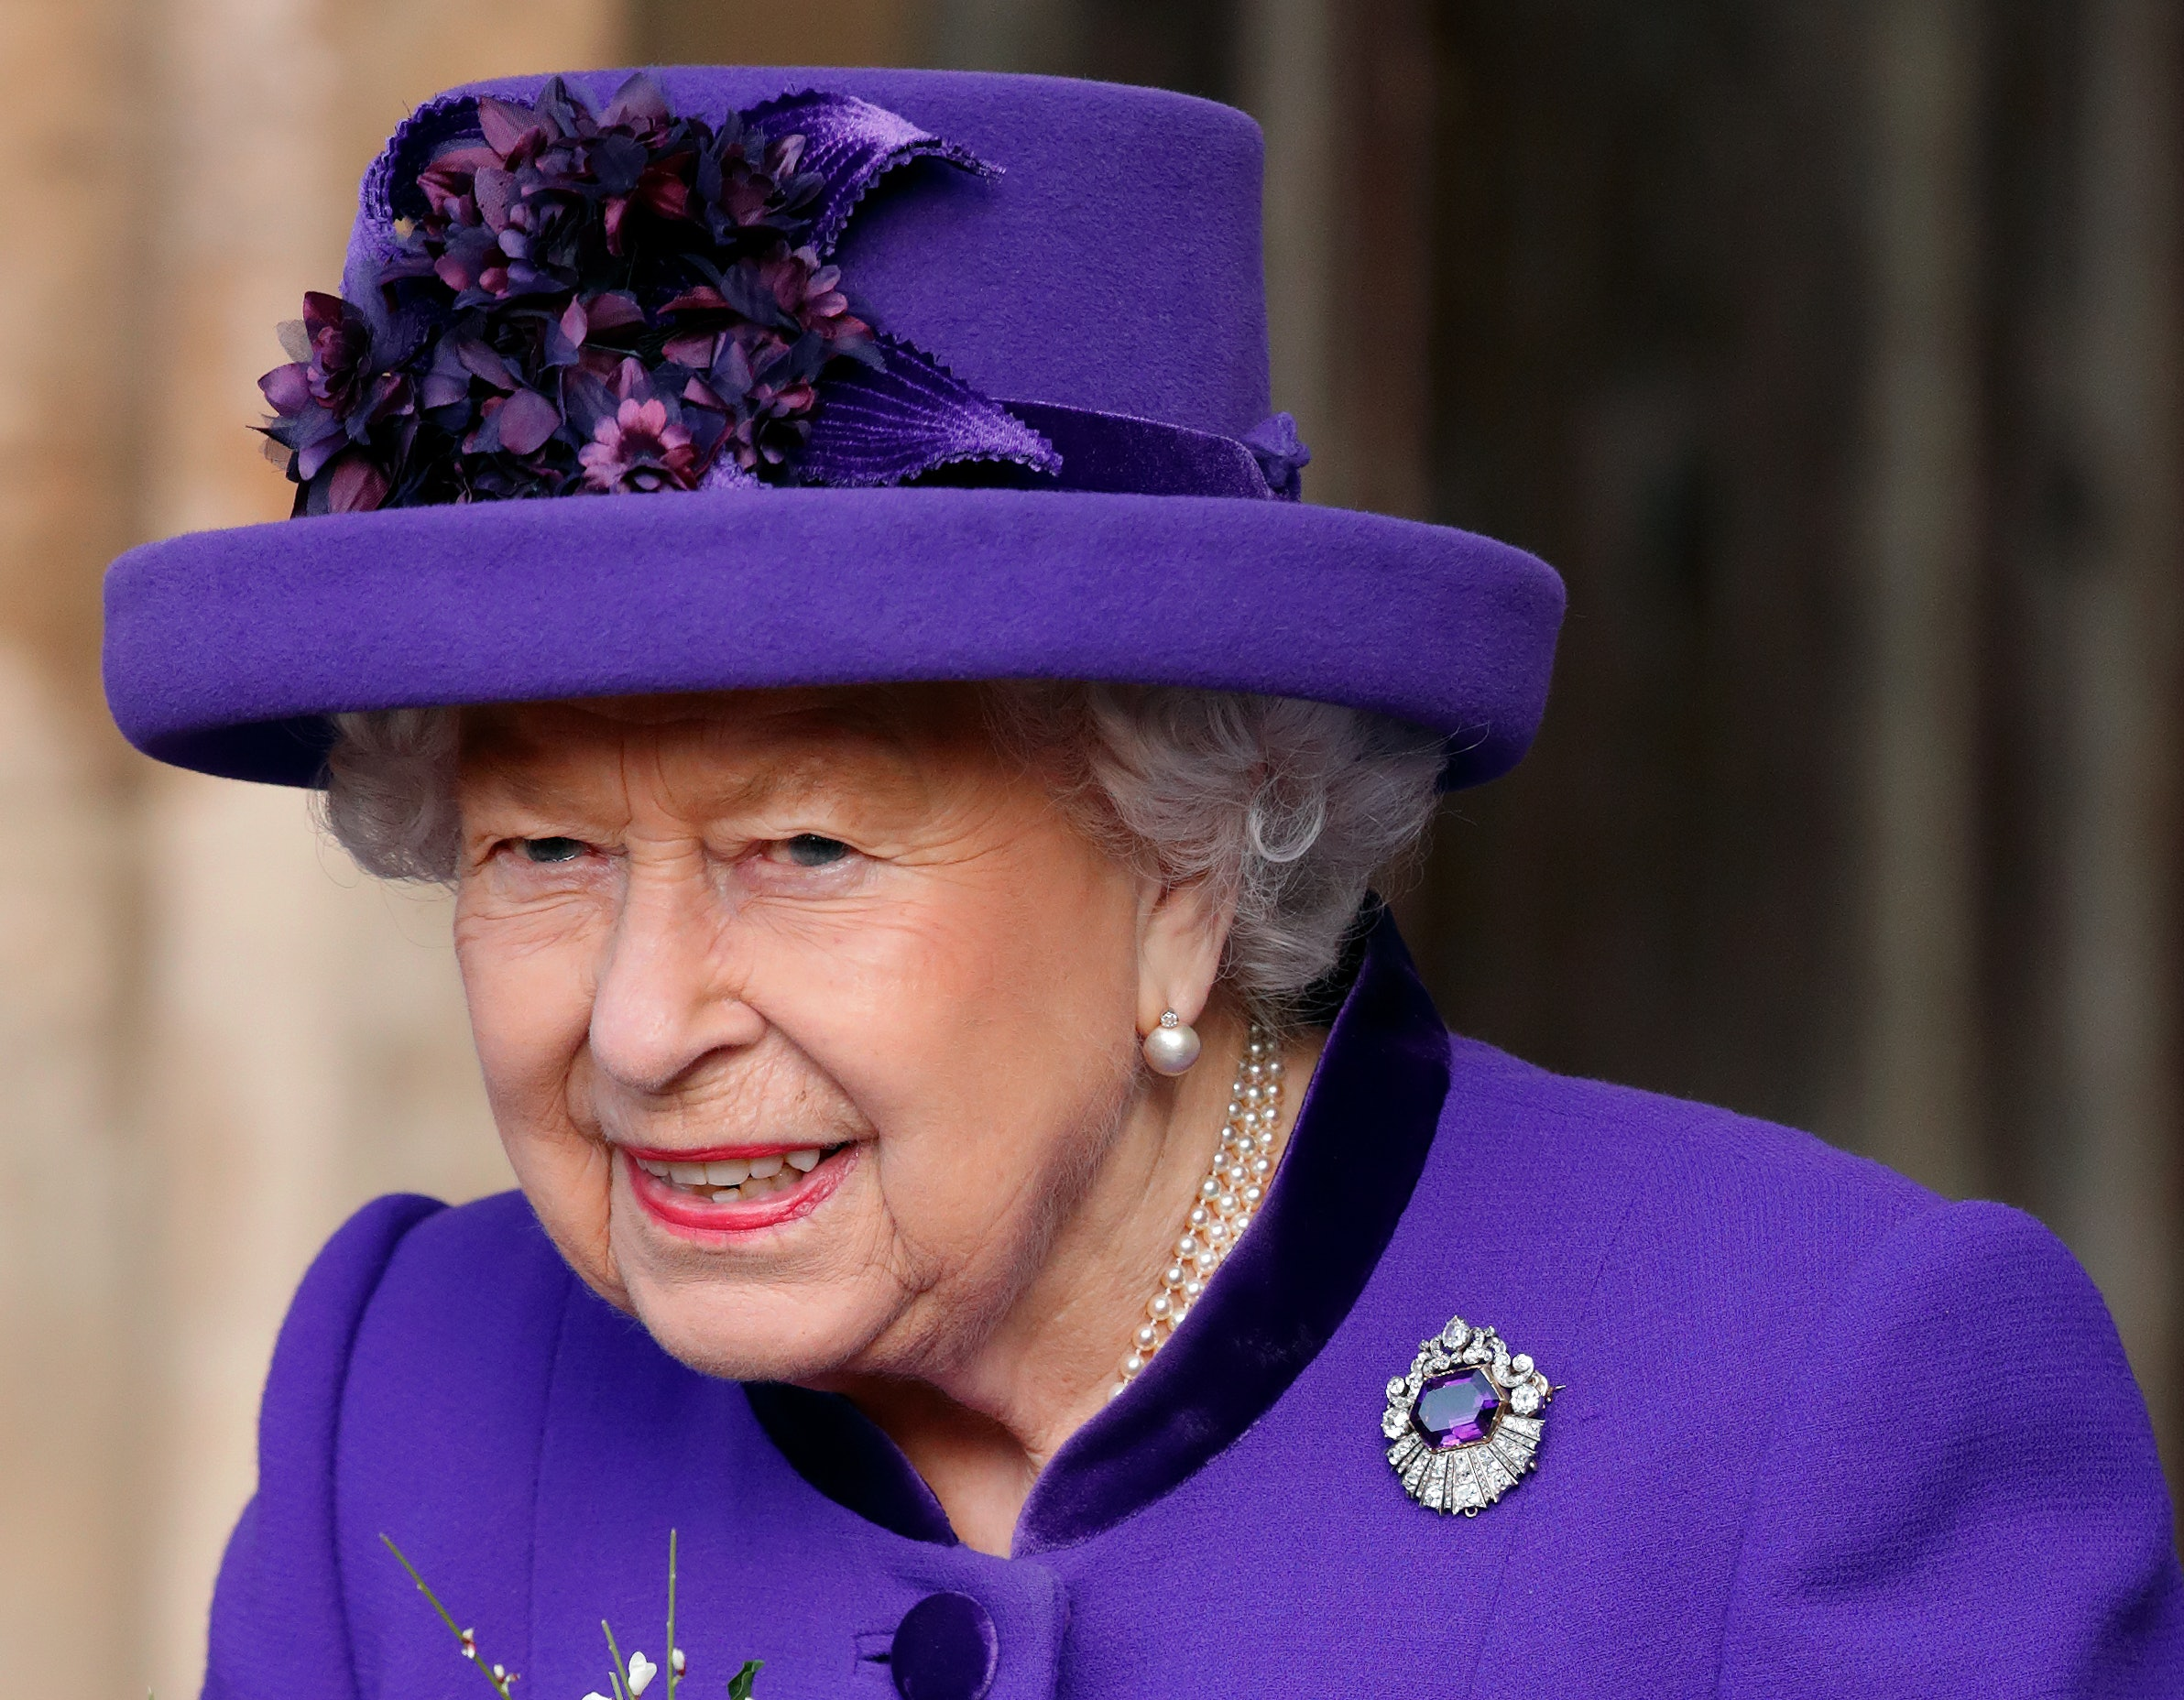 The Queen Spoke Out After Prince Harry & Meghan Markle Welcomed Lilibet